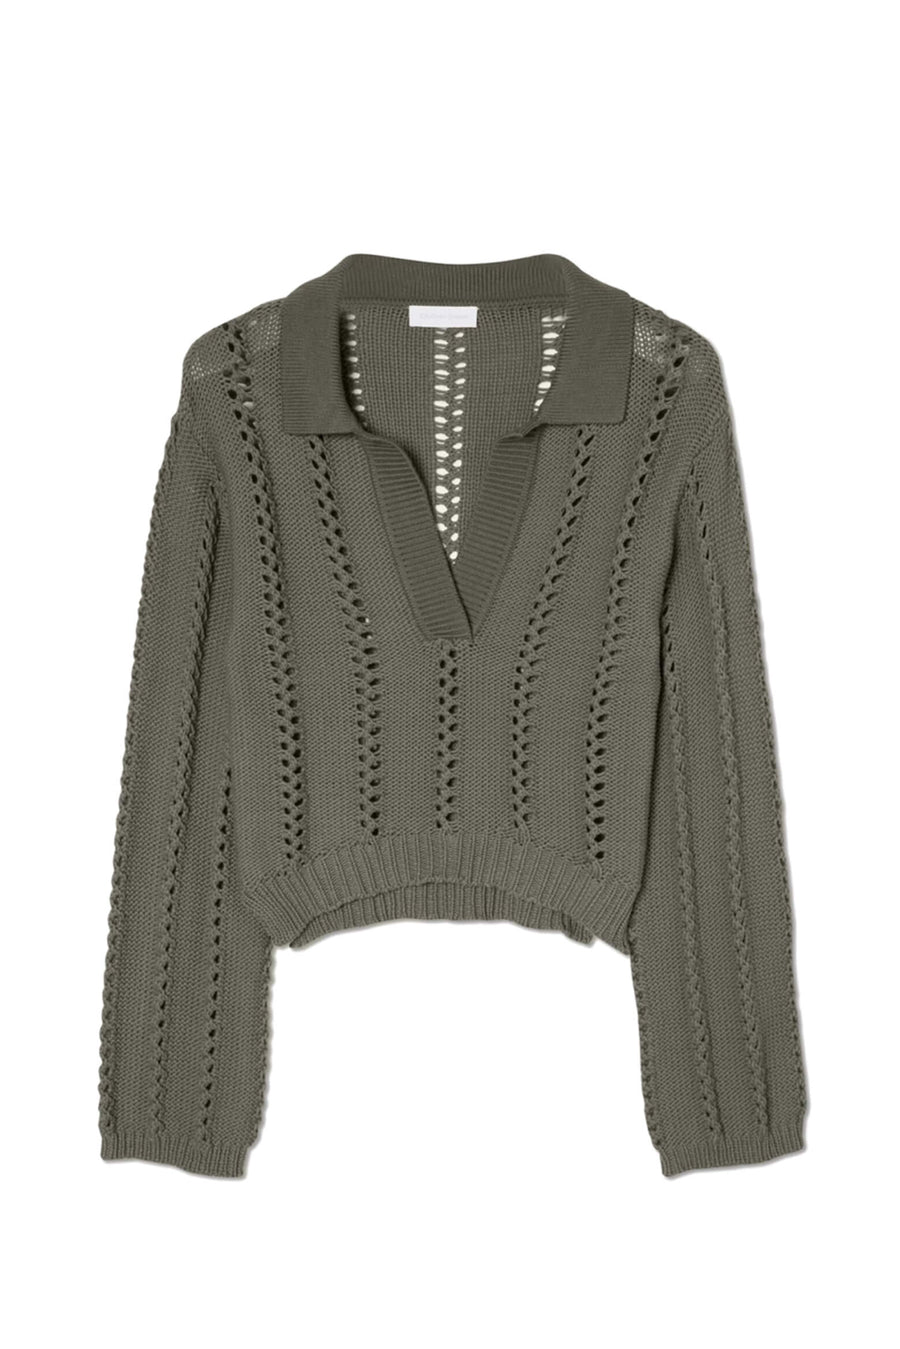 Jonathan Simkhai Berenice Directional Rib LS Polo in Eucalyptus from The New Trend